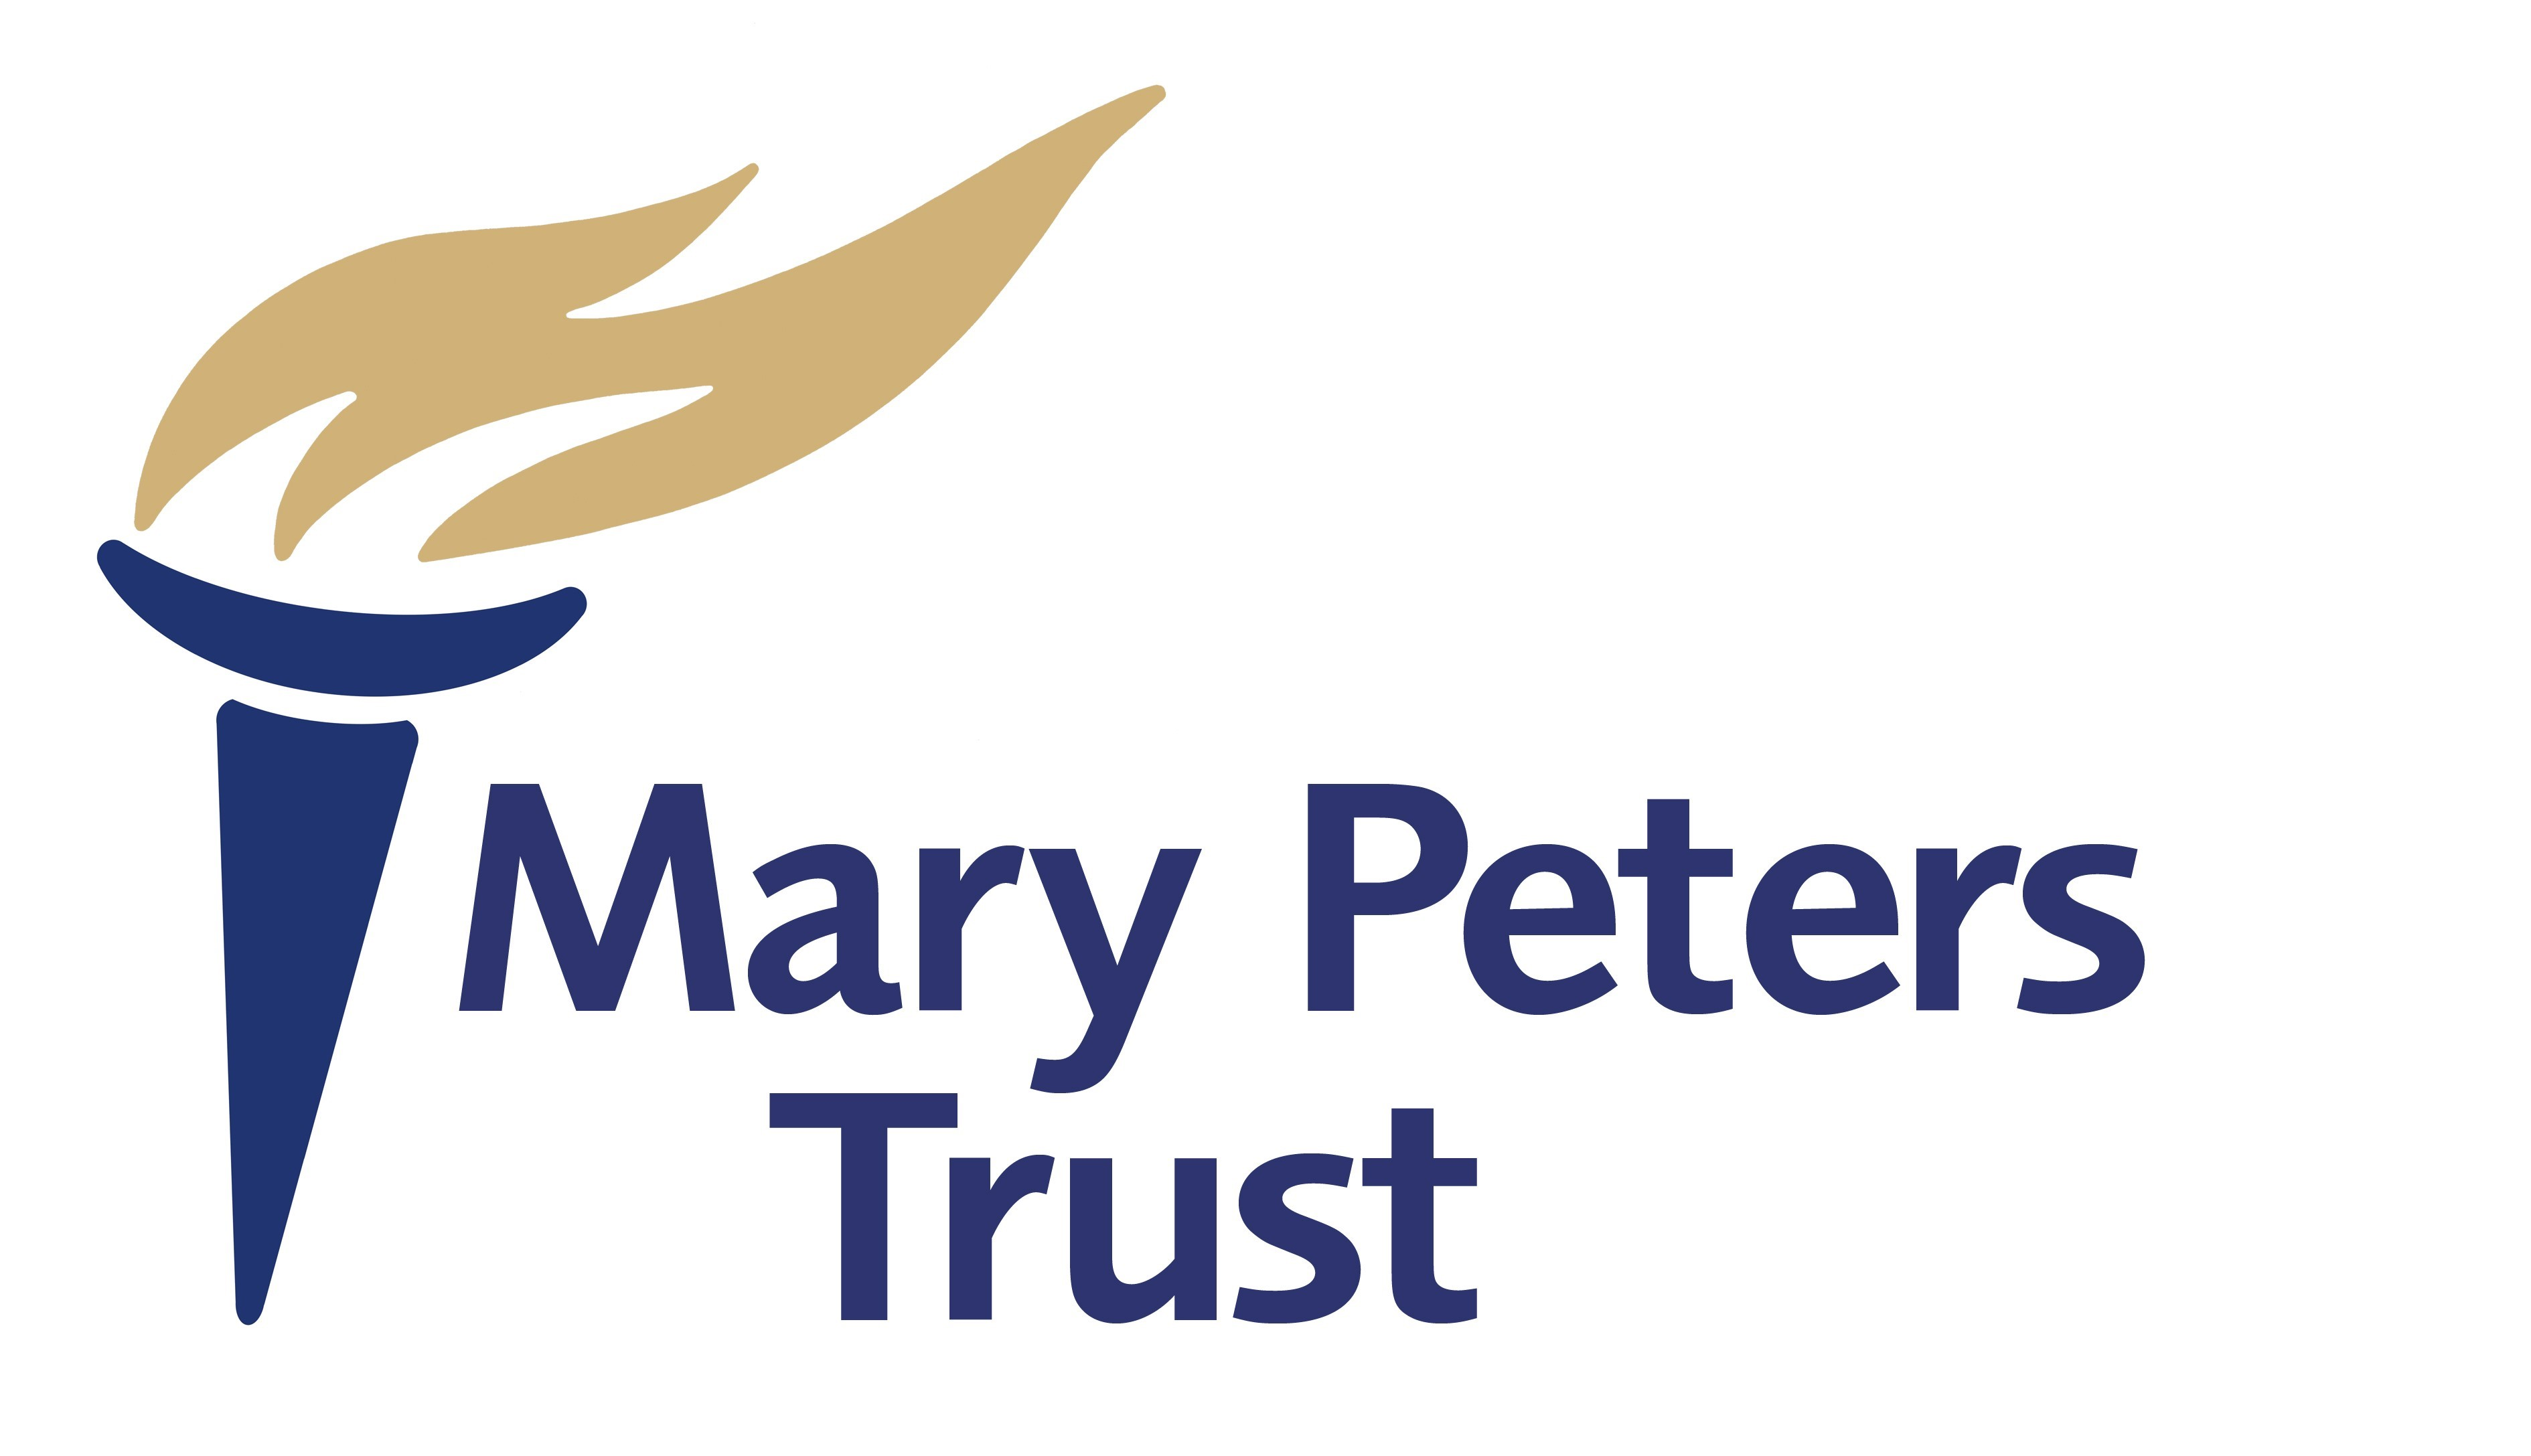 marypeterstrustlogo.jpg